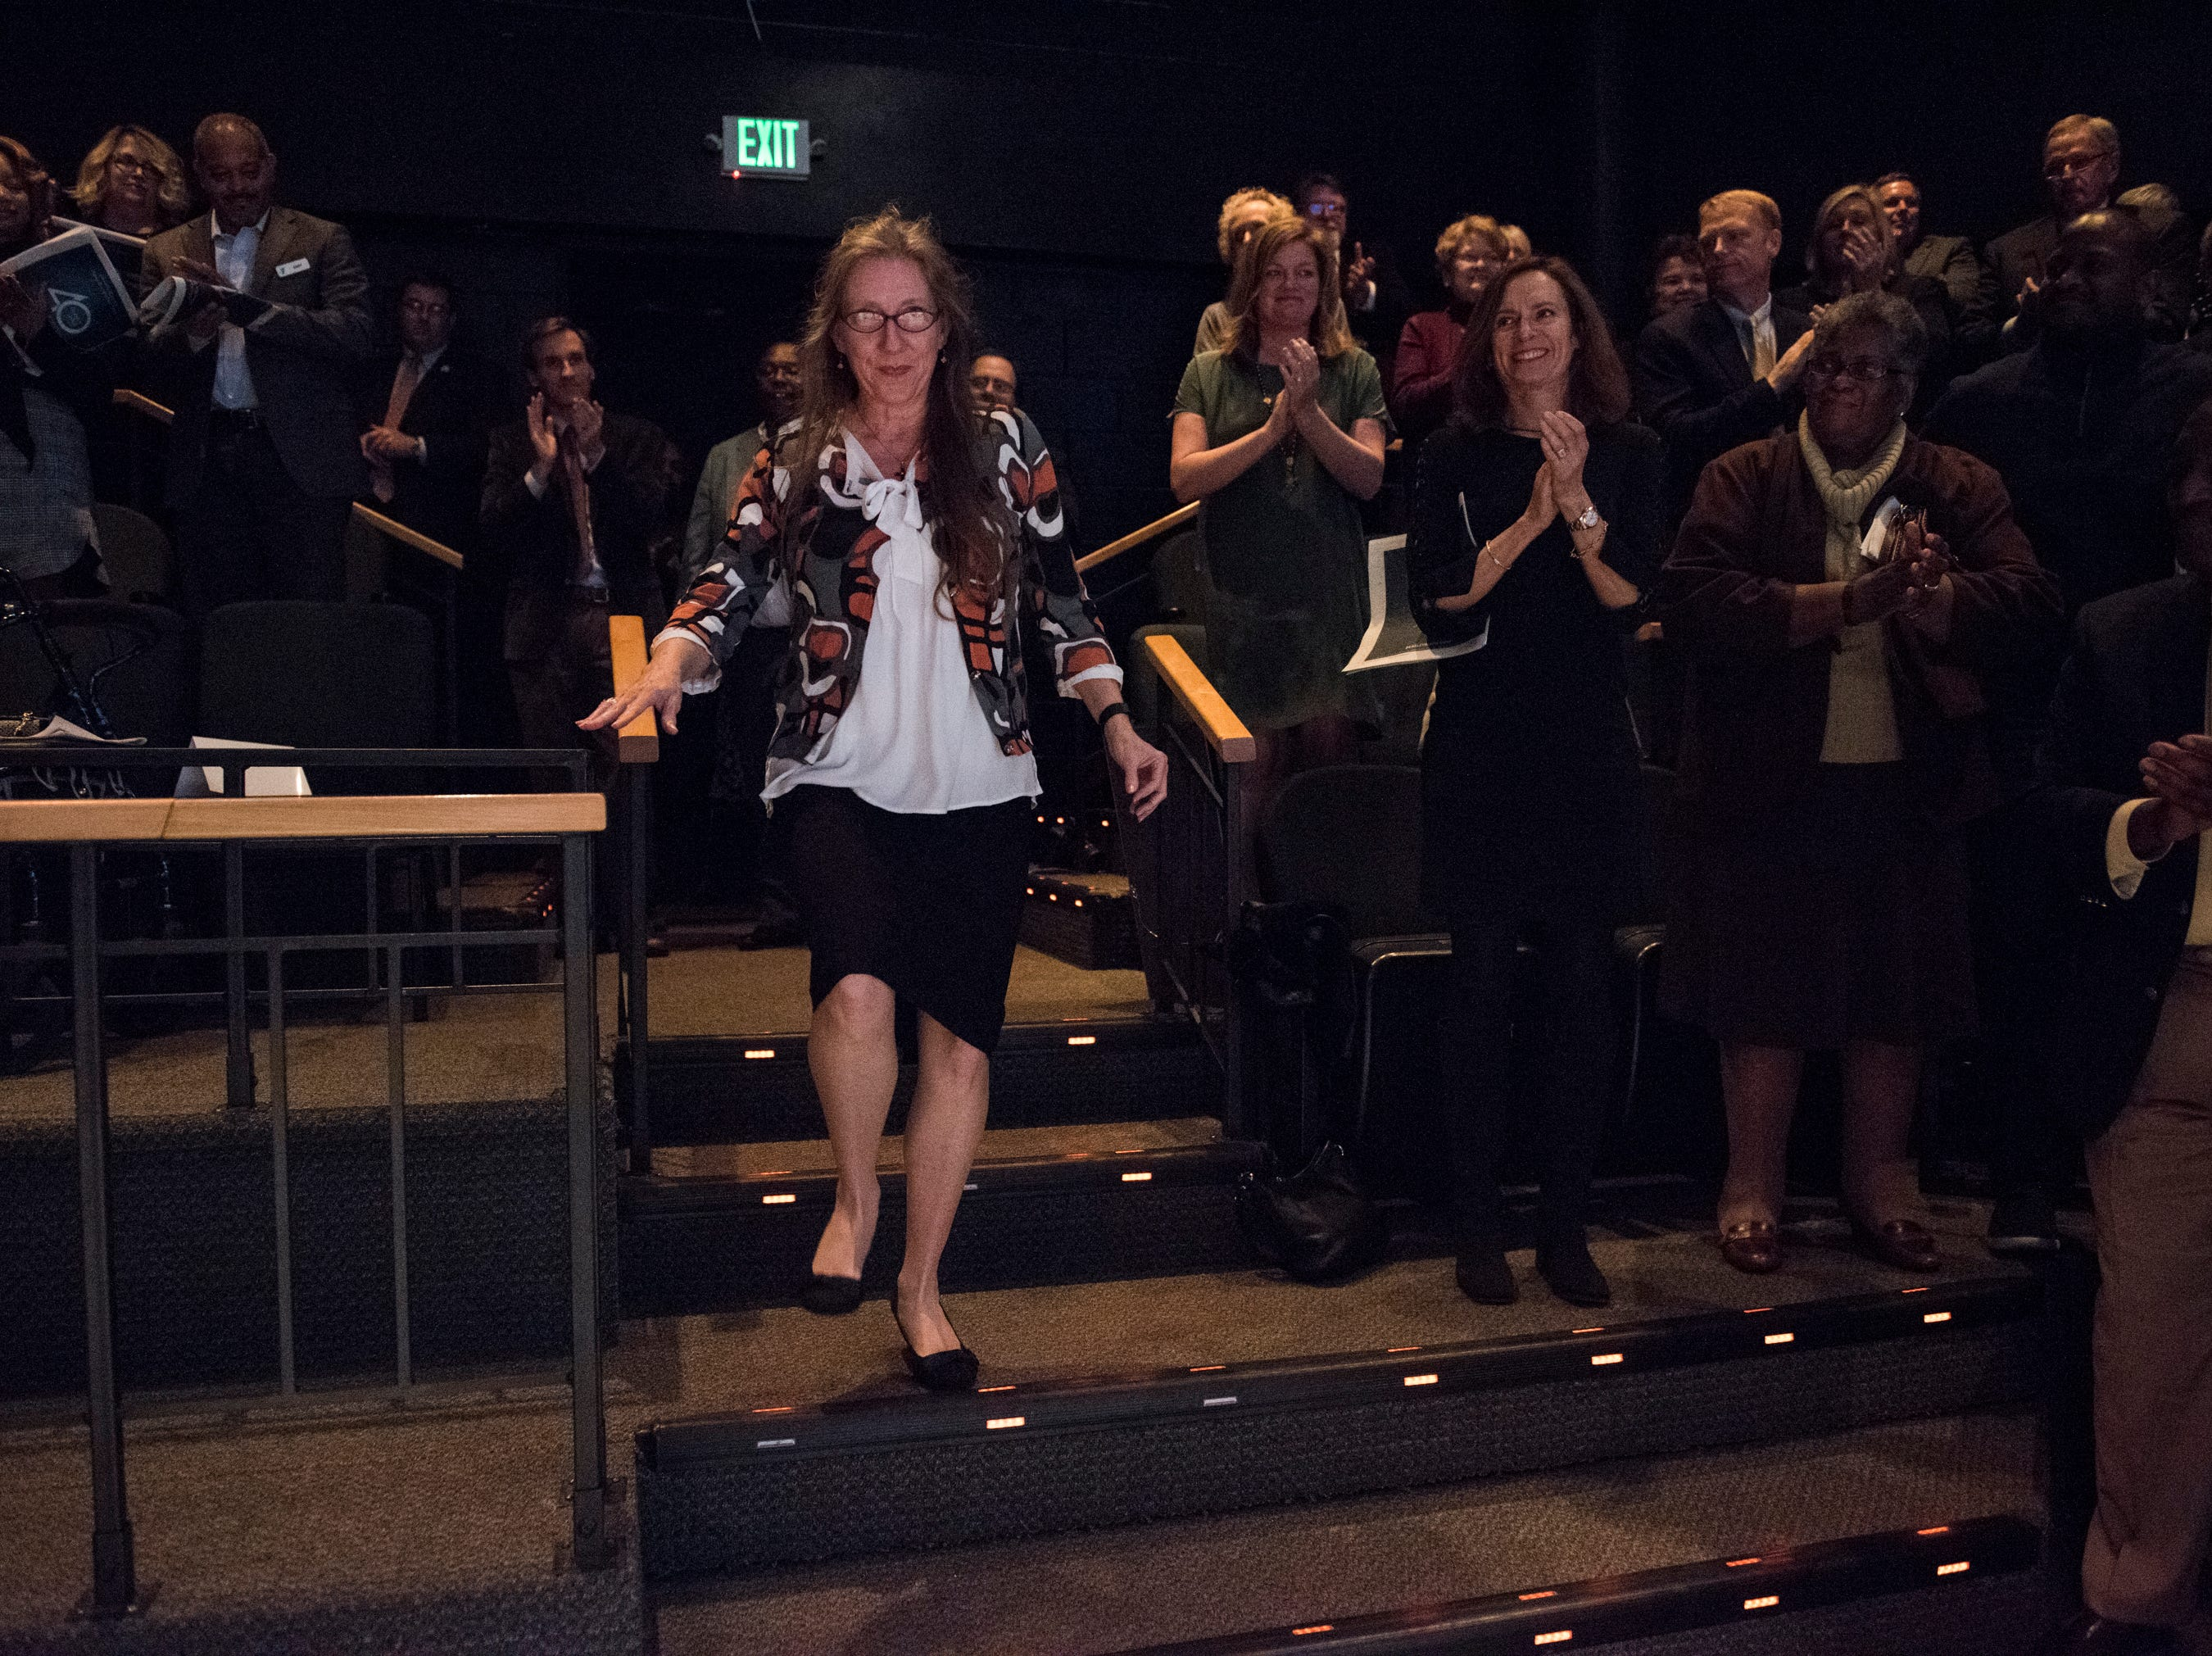 LaDonna Brendle gets a standing ovation as she his awarded the Community Hero of the year award during the Community Heroes awards ceremony at Alabama Shakespeare Festival in Montgomery, Ala., on Tuesday, Jan. 8, 2019.